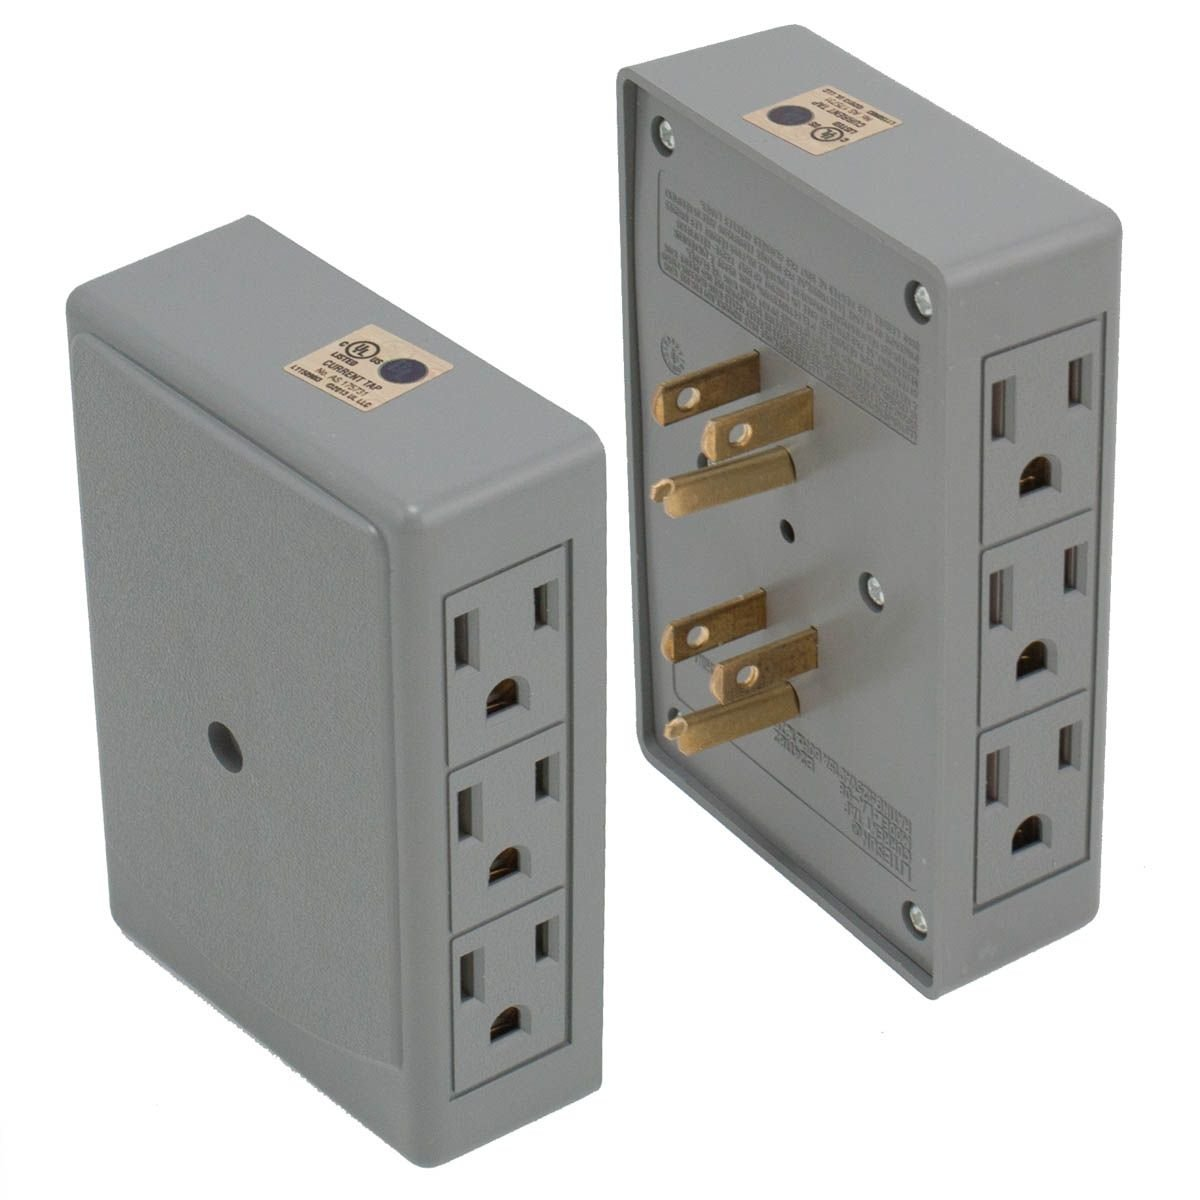 2 Side Entry 6 Way Electrical Socket Outlet Splitter In Wiring An Middle Of Circuit Wall Tap Adapter Grey Electronics